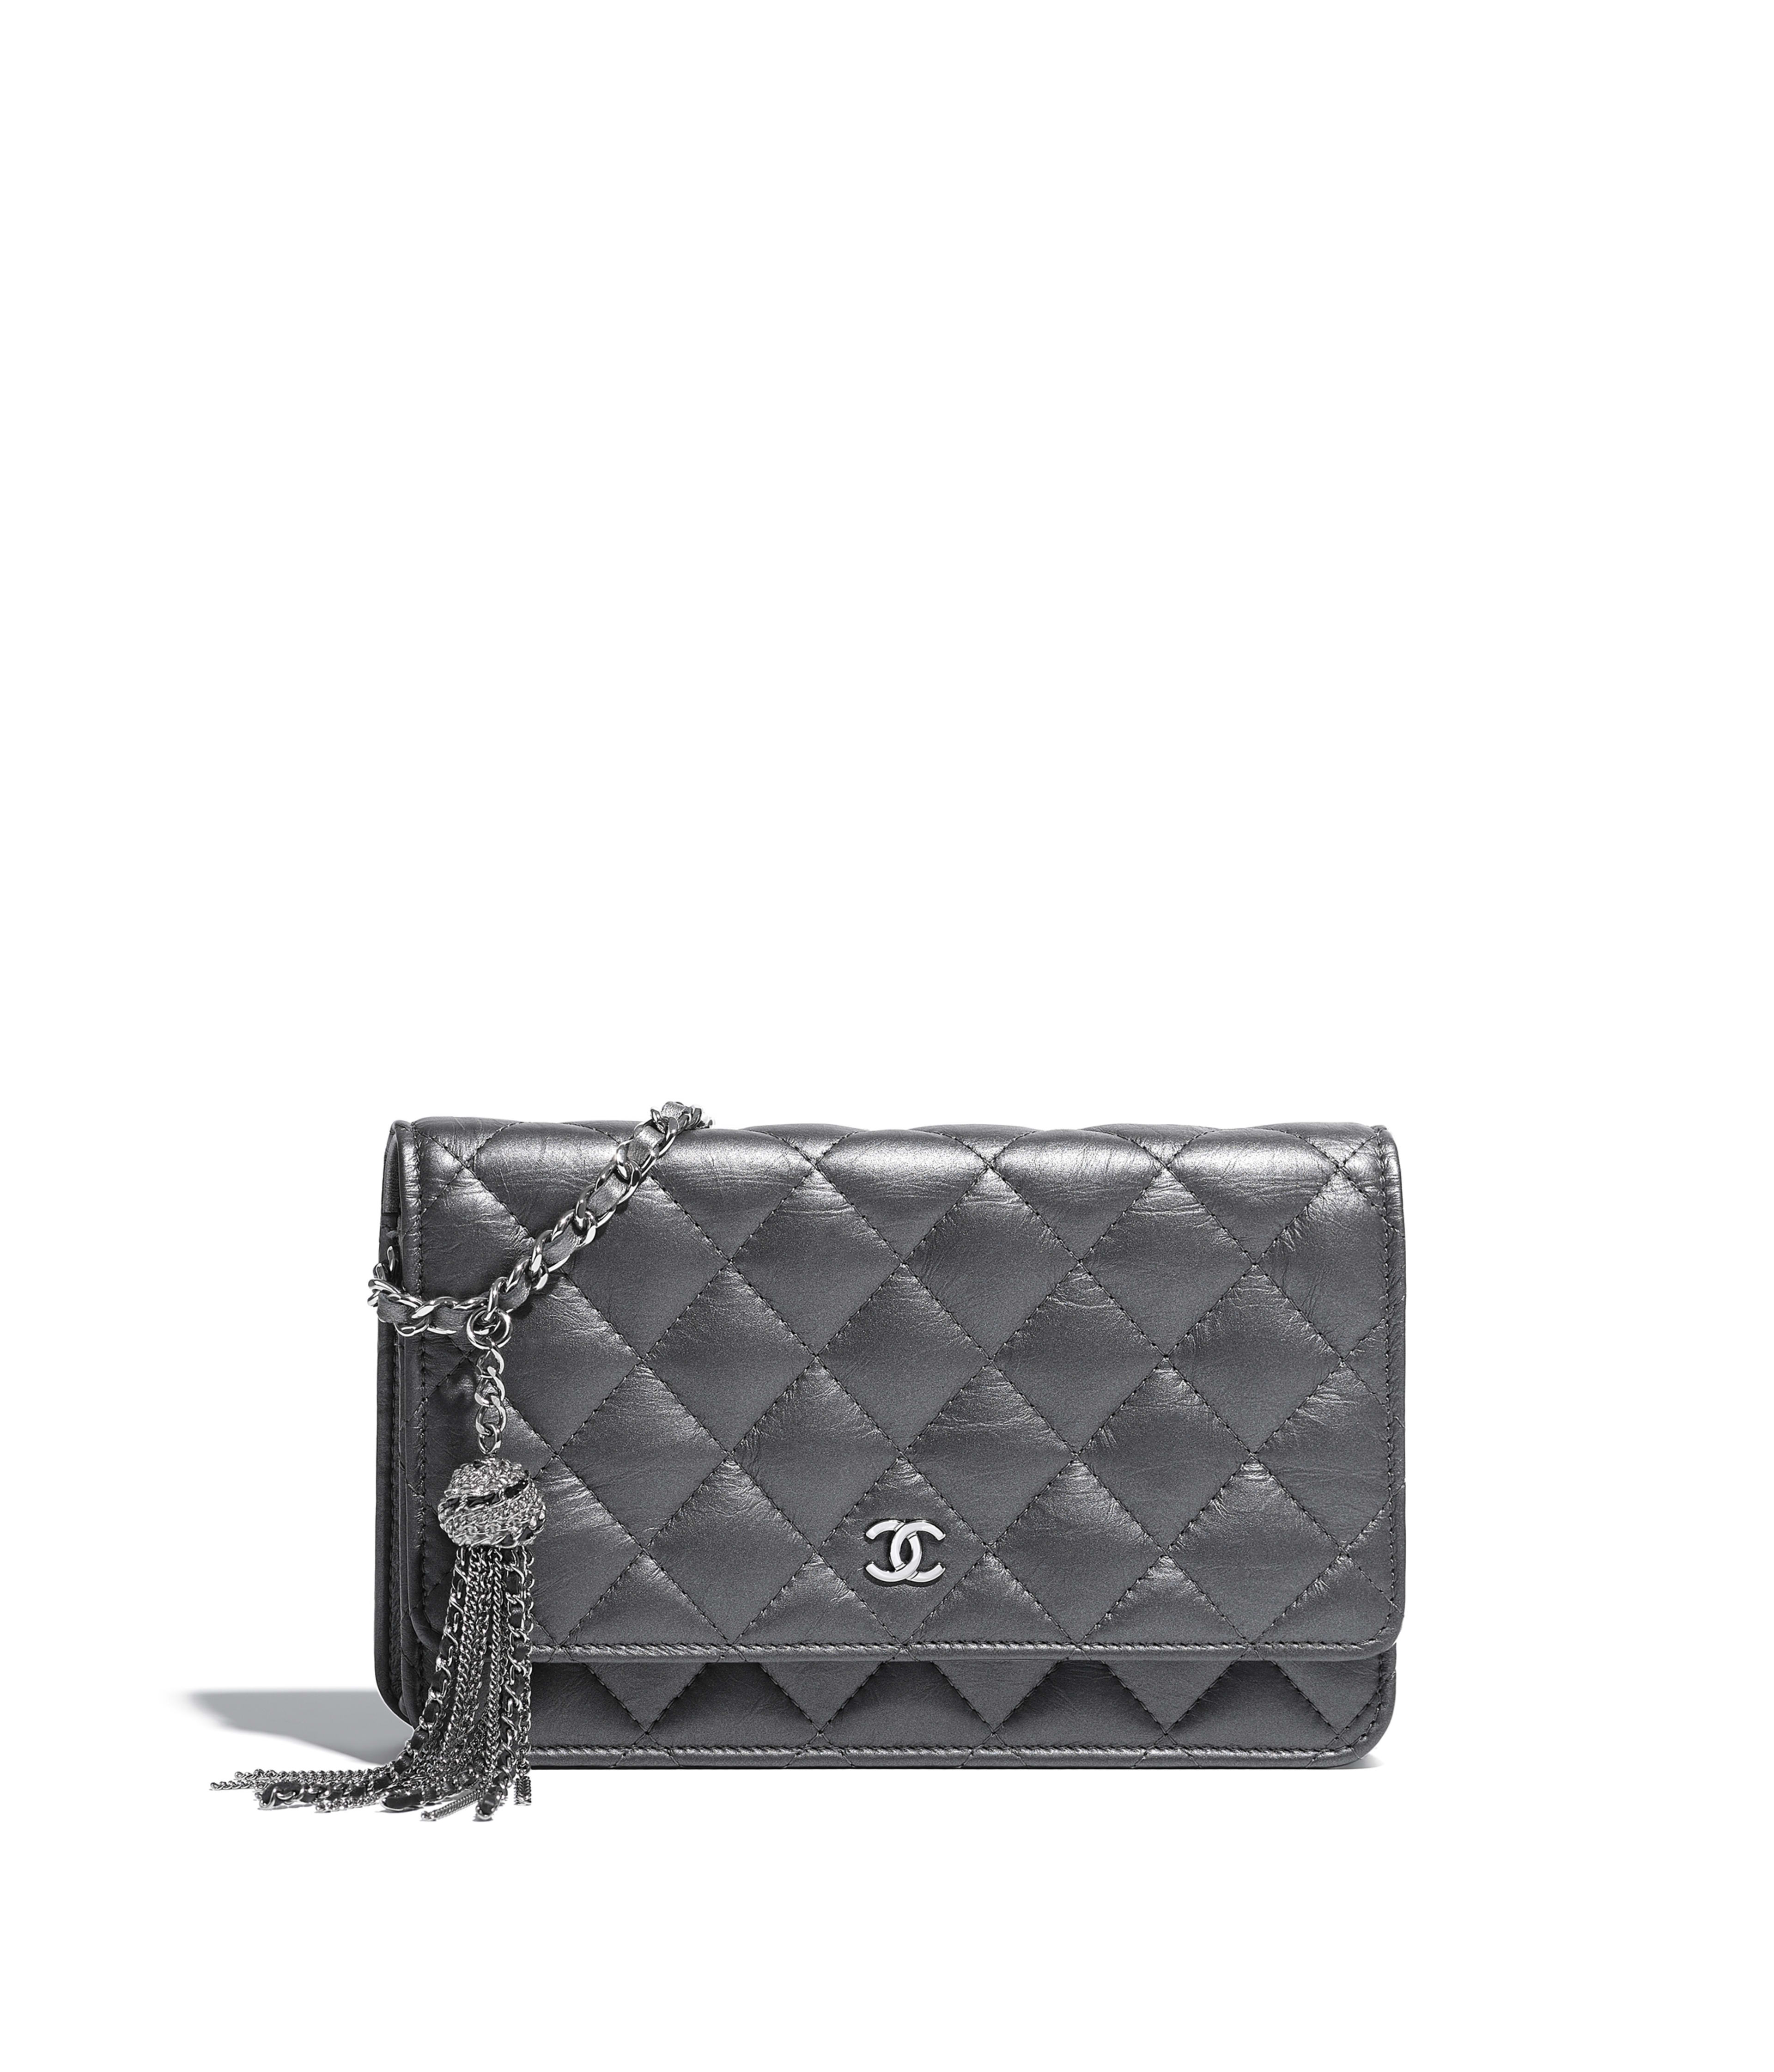 Classic Wallet on Chain Iridescent Aged Calfskin   Ruthenium-Finish Metal,  Silver Ref. A33814Y333880B880 612de166ea